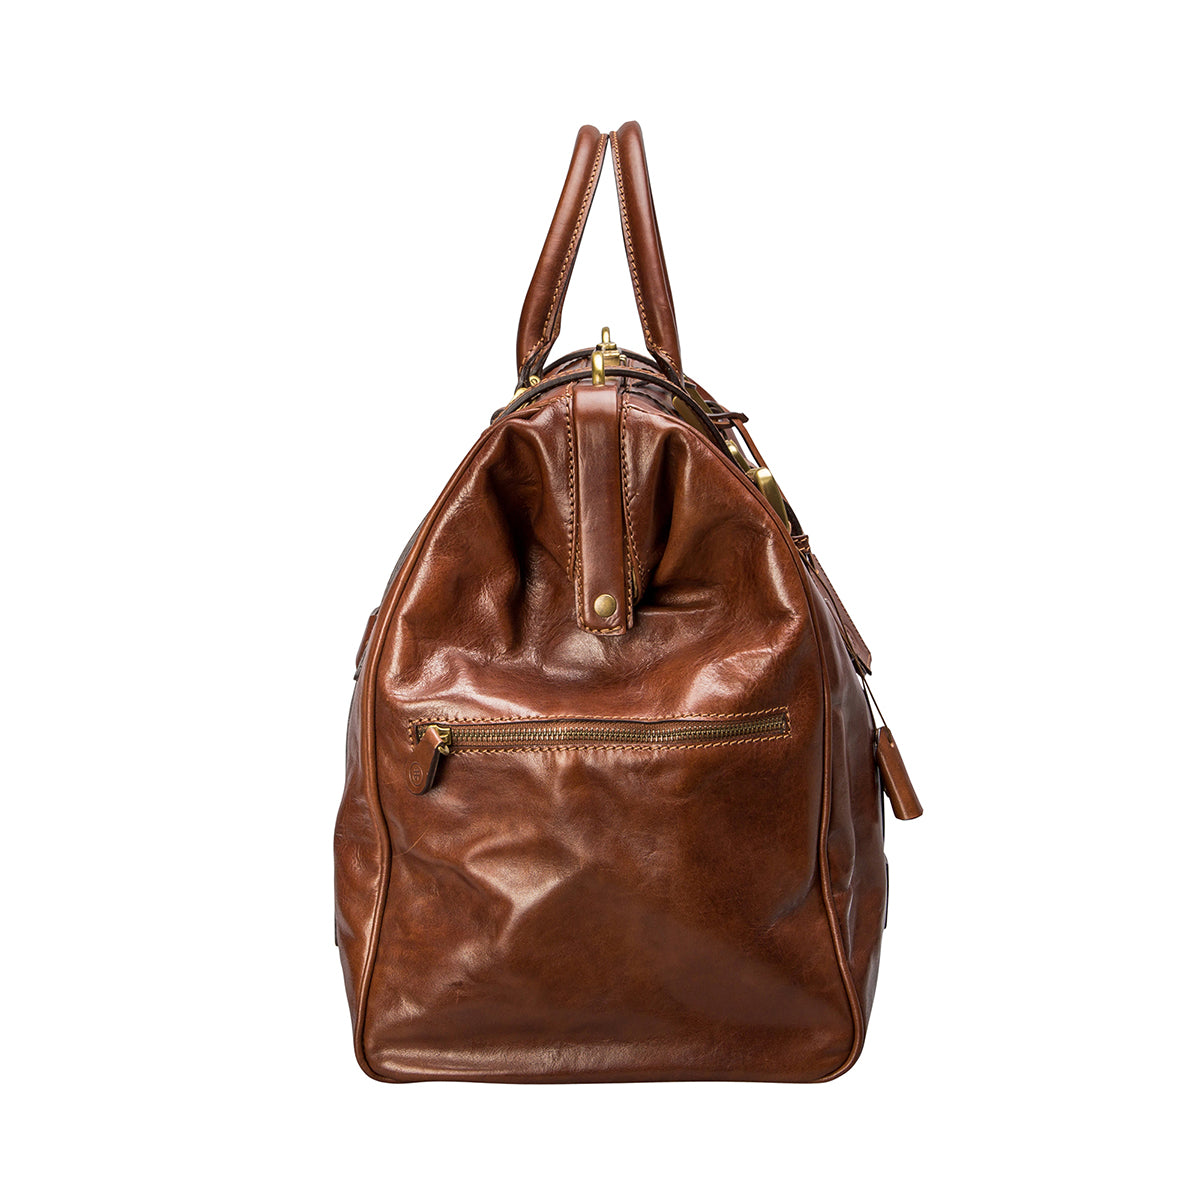 Image 3 of the 'Gassano M' Chestnut Veg-Tanned Leather Holdall